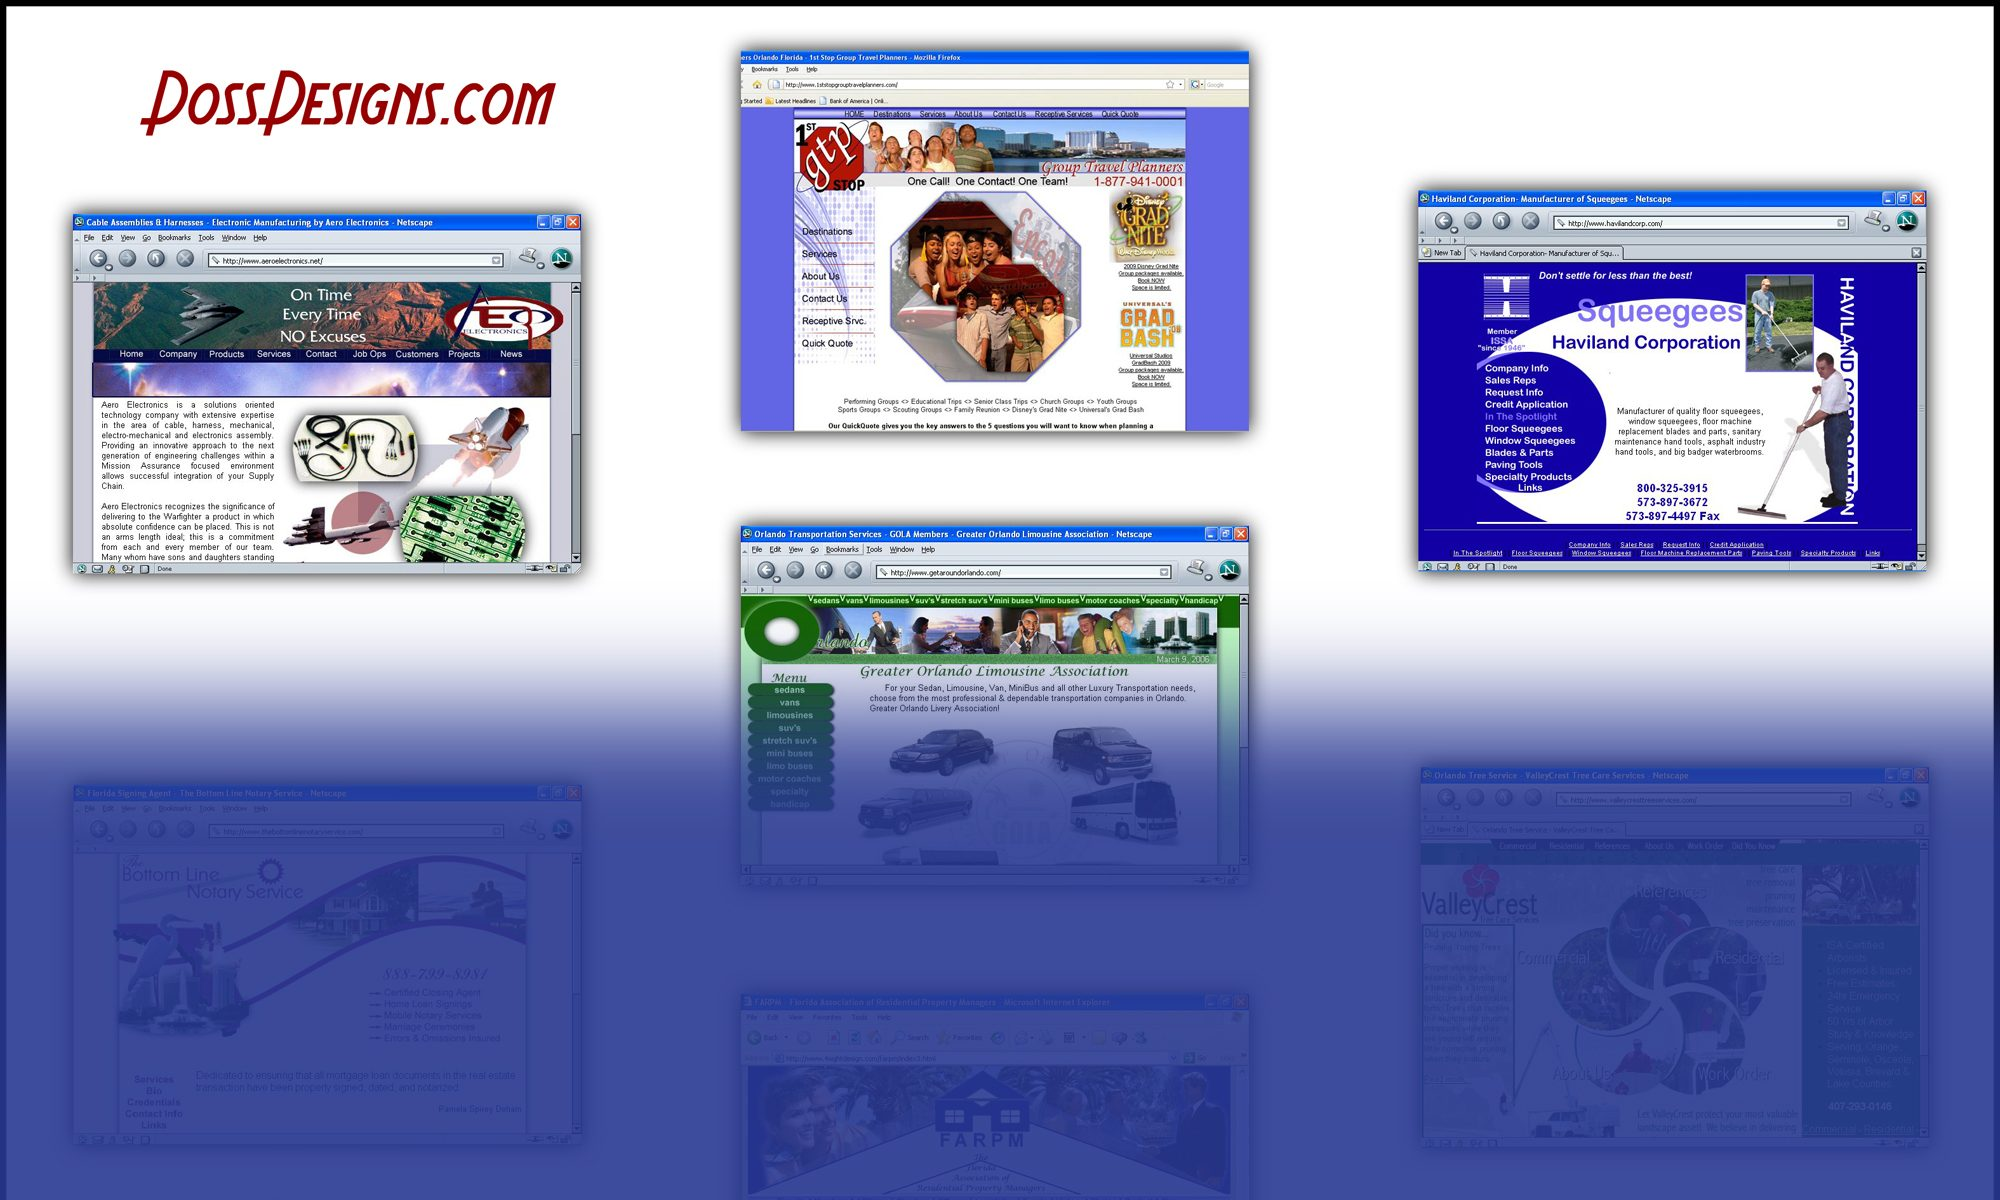 Your Website Design and Marketing Solution